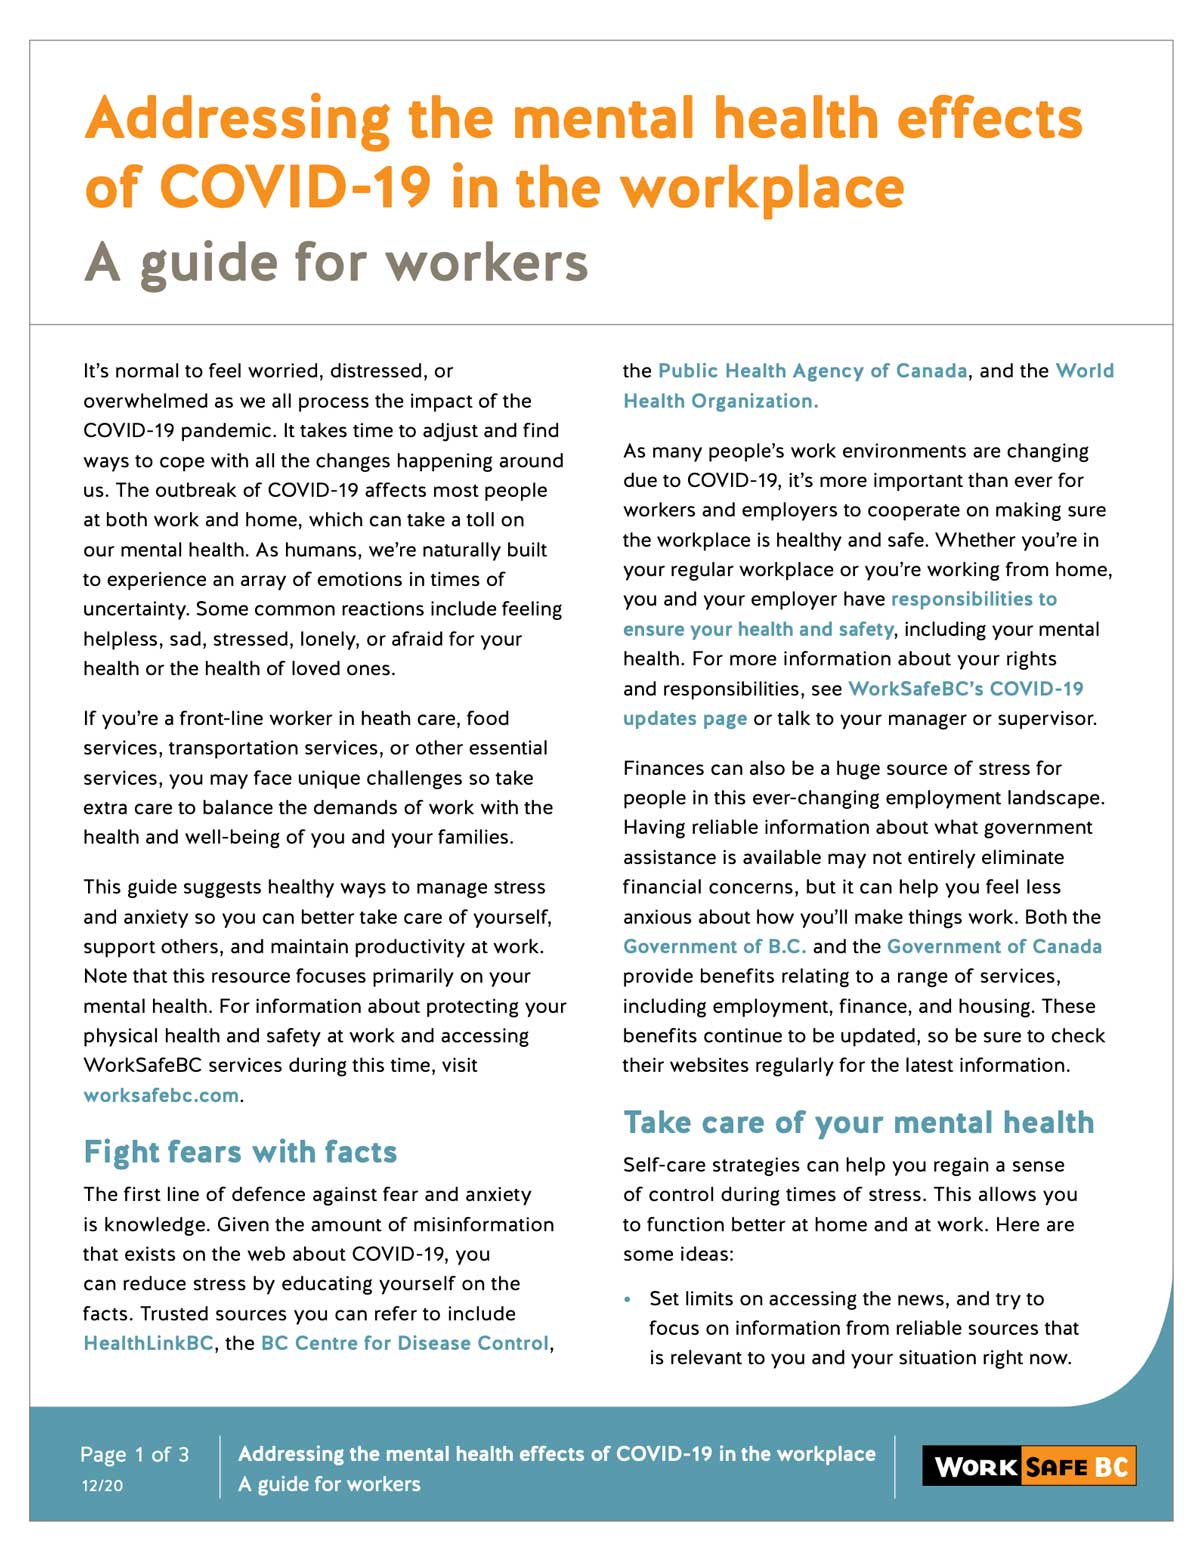 Addressing the mental health effects of COVID-19 in the workplace A guide for workers